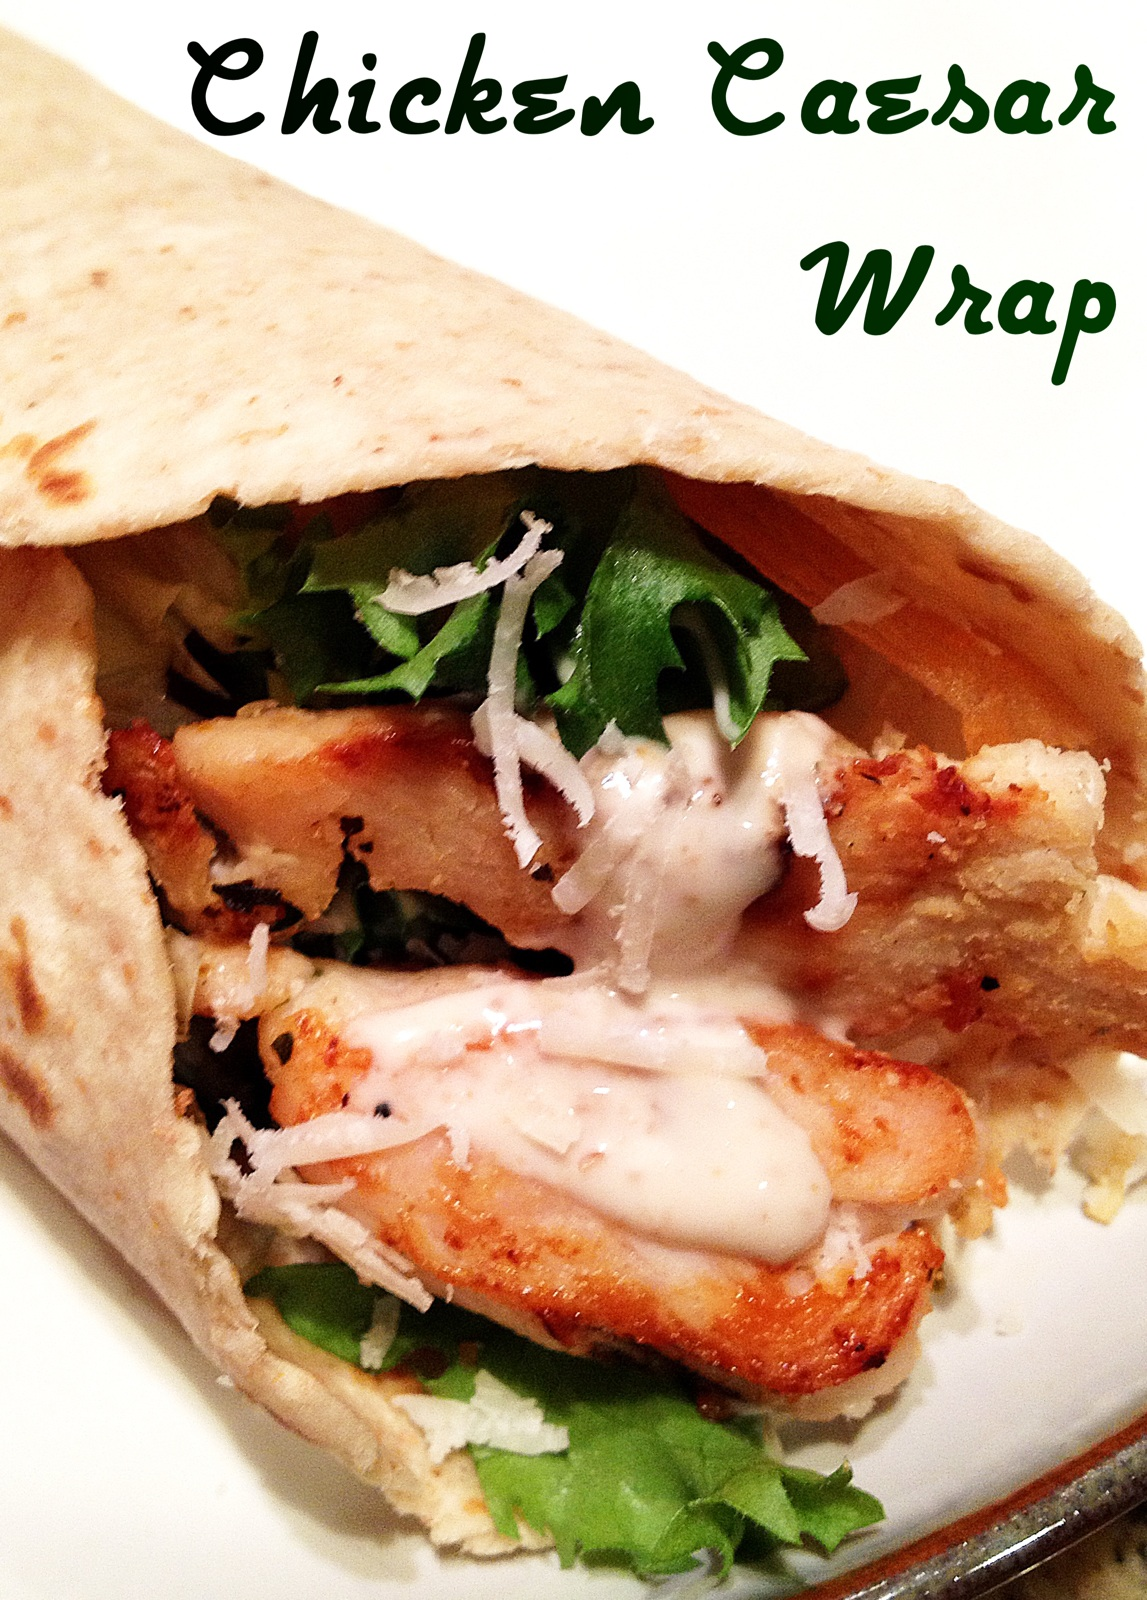 Healthy Makeover: Chicken Caesar Wrap